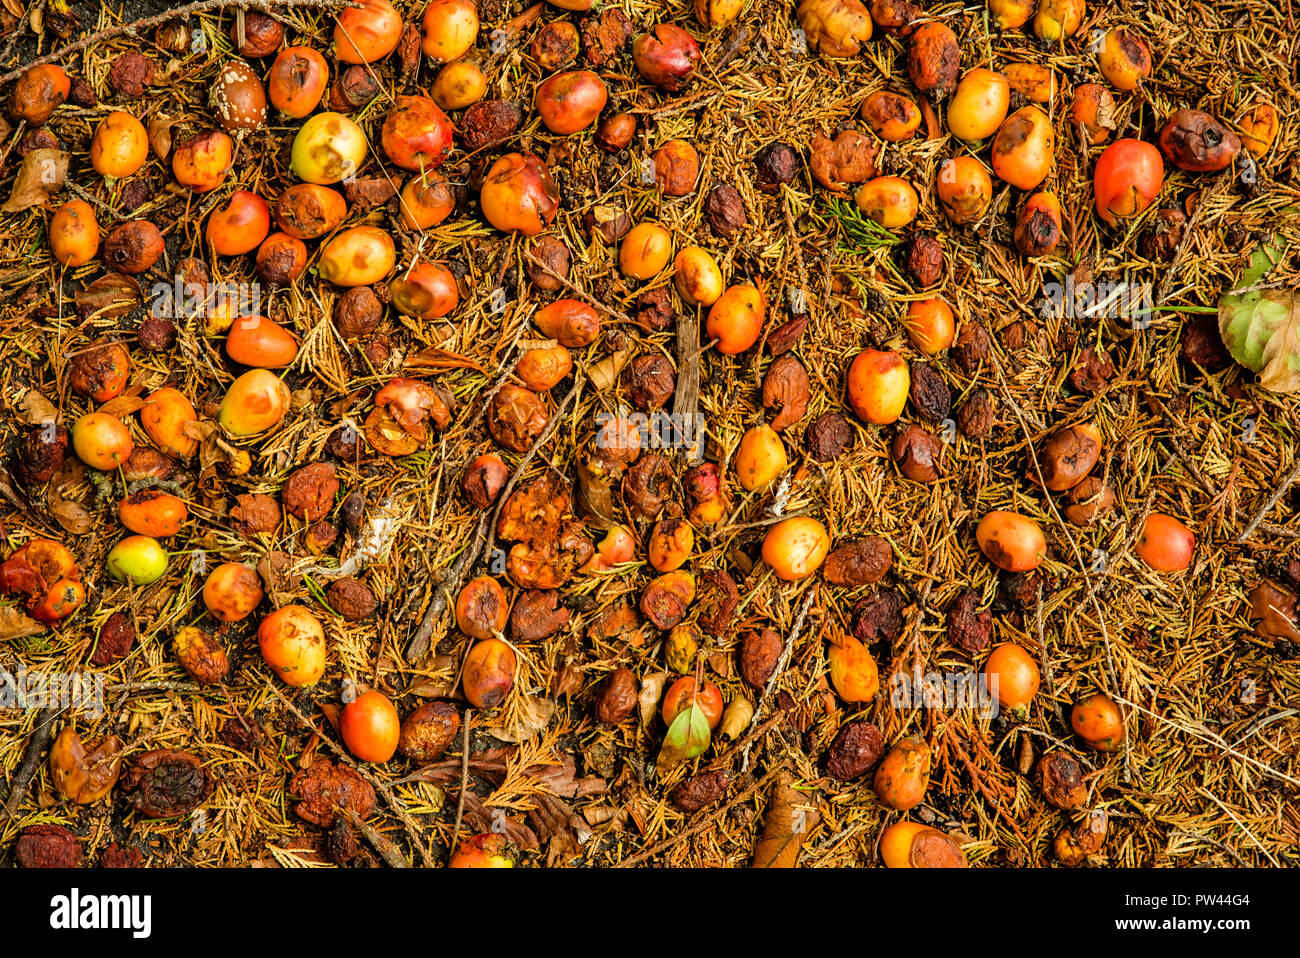 Fallen crabapples mix with dead pine needles on an urban sidewalk in Southampton, England. They herald the onset of Fall and the start of the regenera - Stock Image